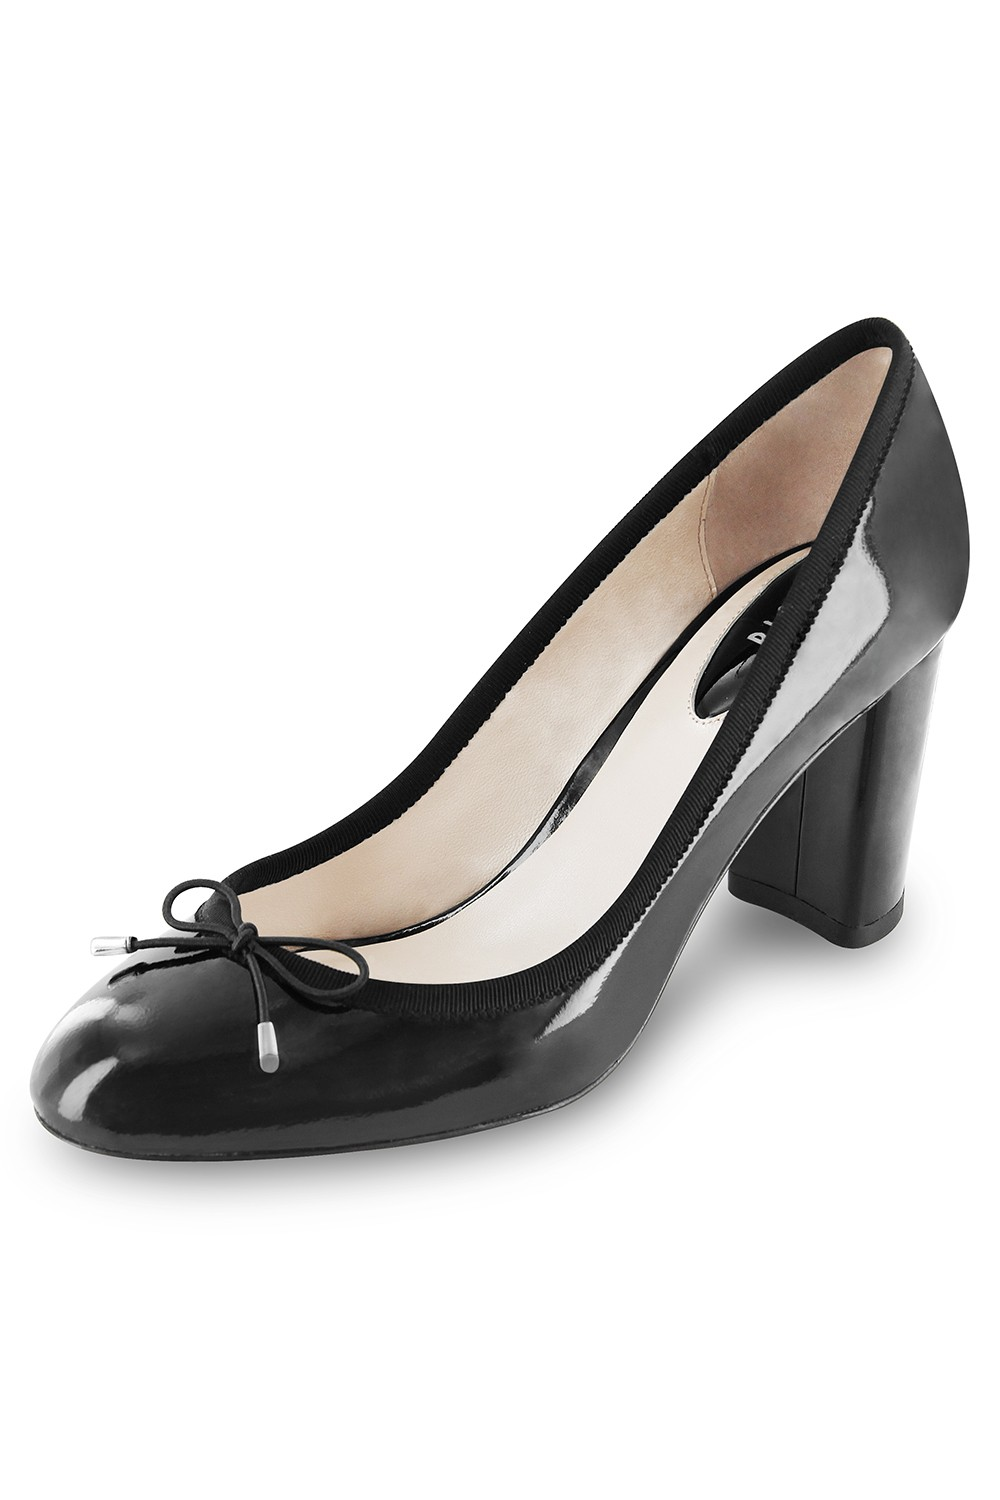 Shoe Prima 70 Womens Fashion Shoes